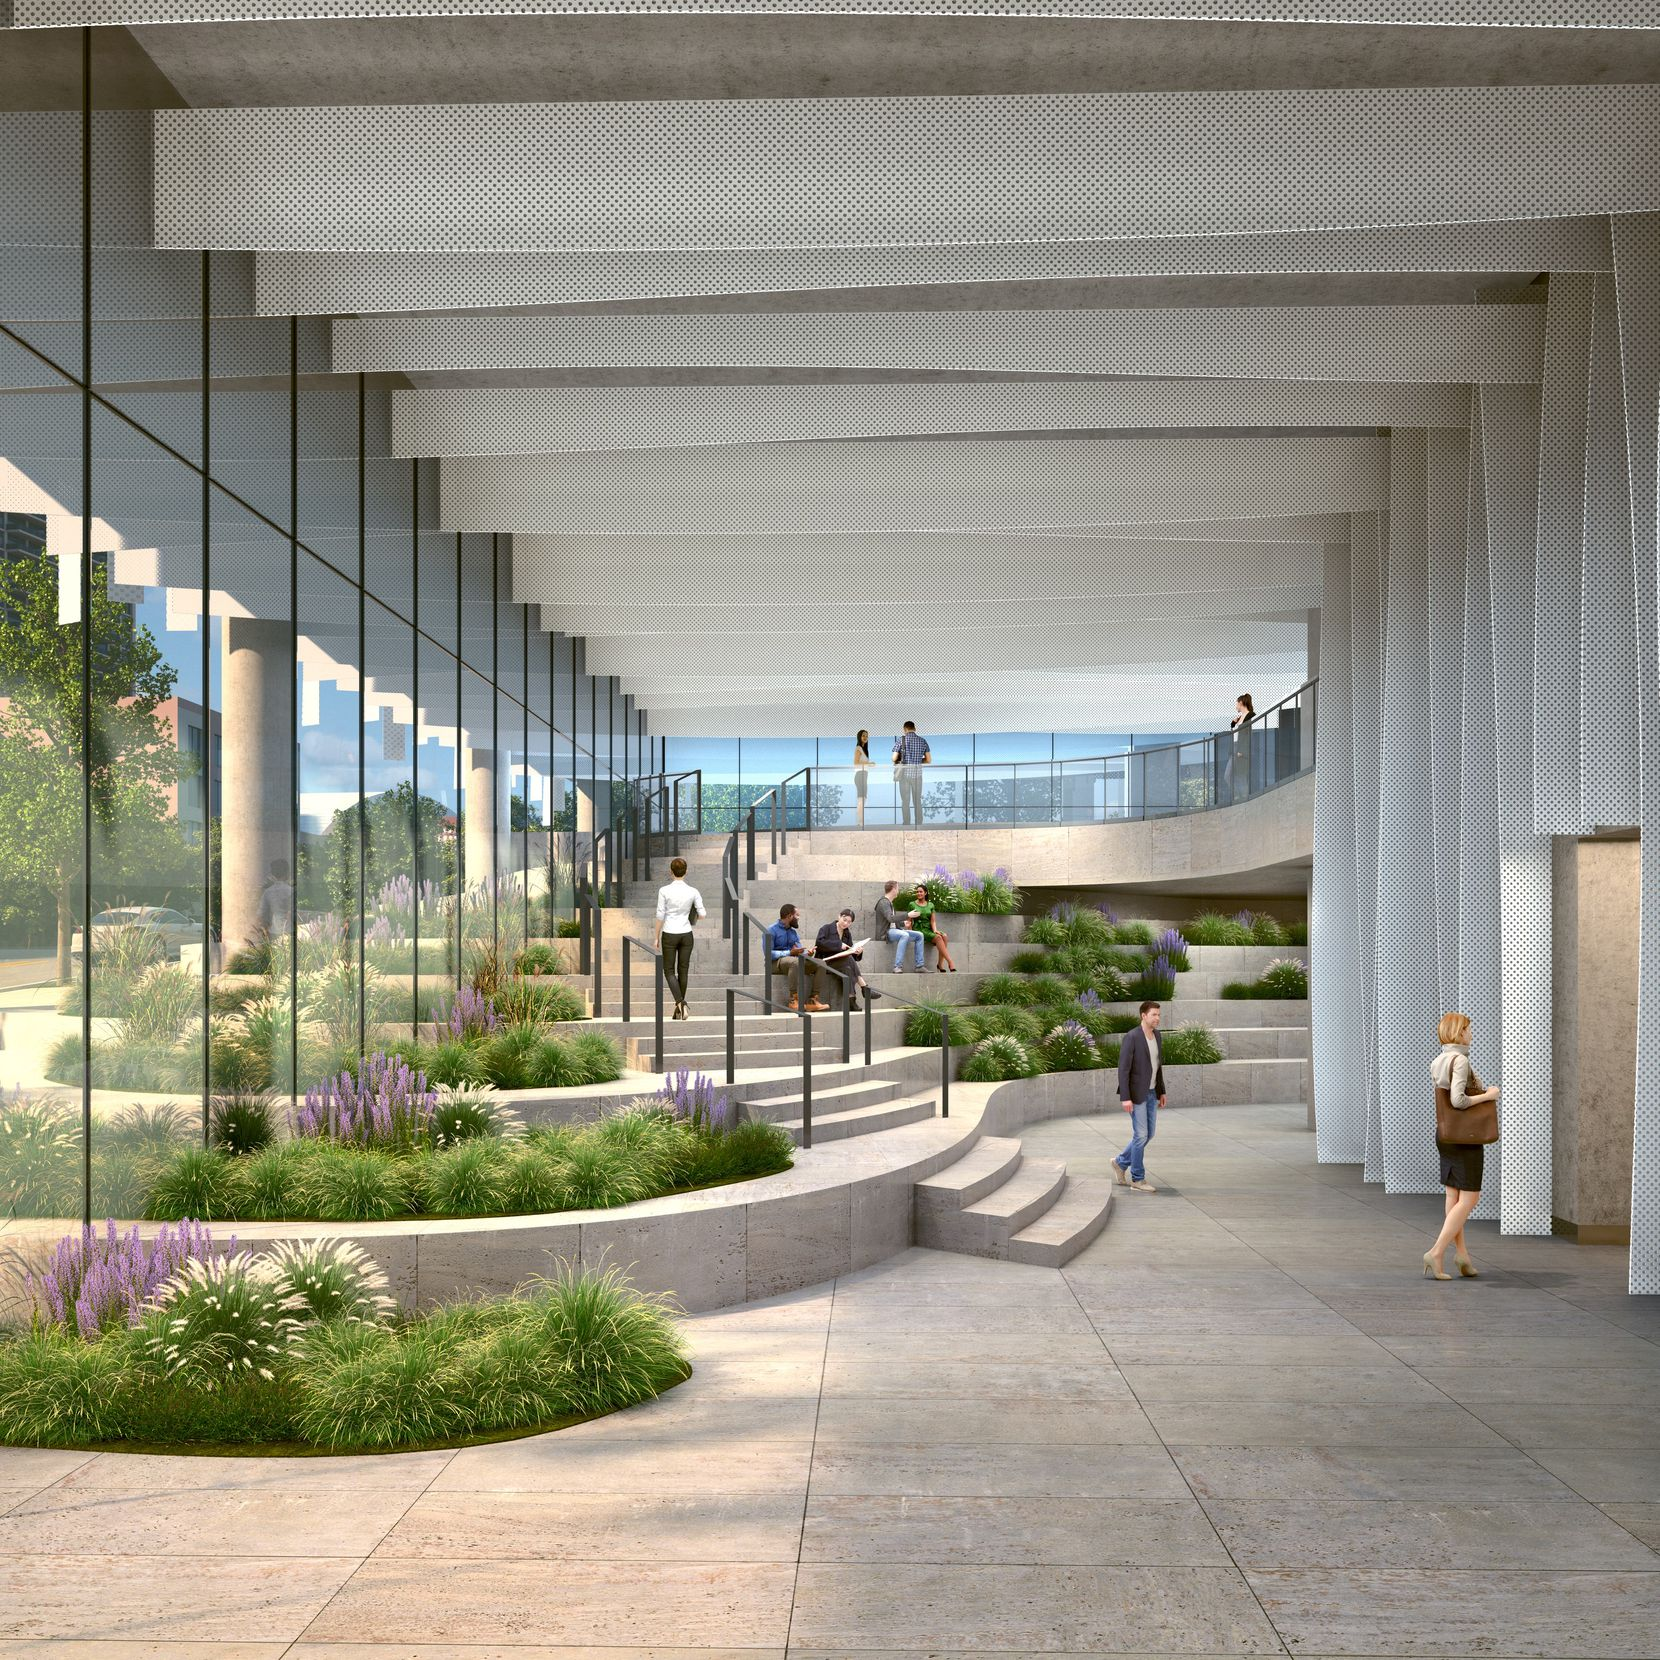 The building will have a two-story lobby with garden areas.